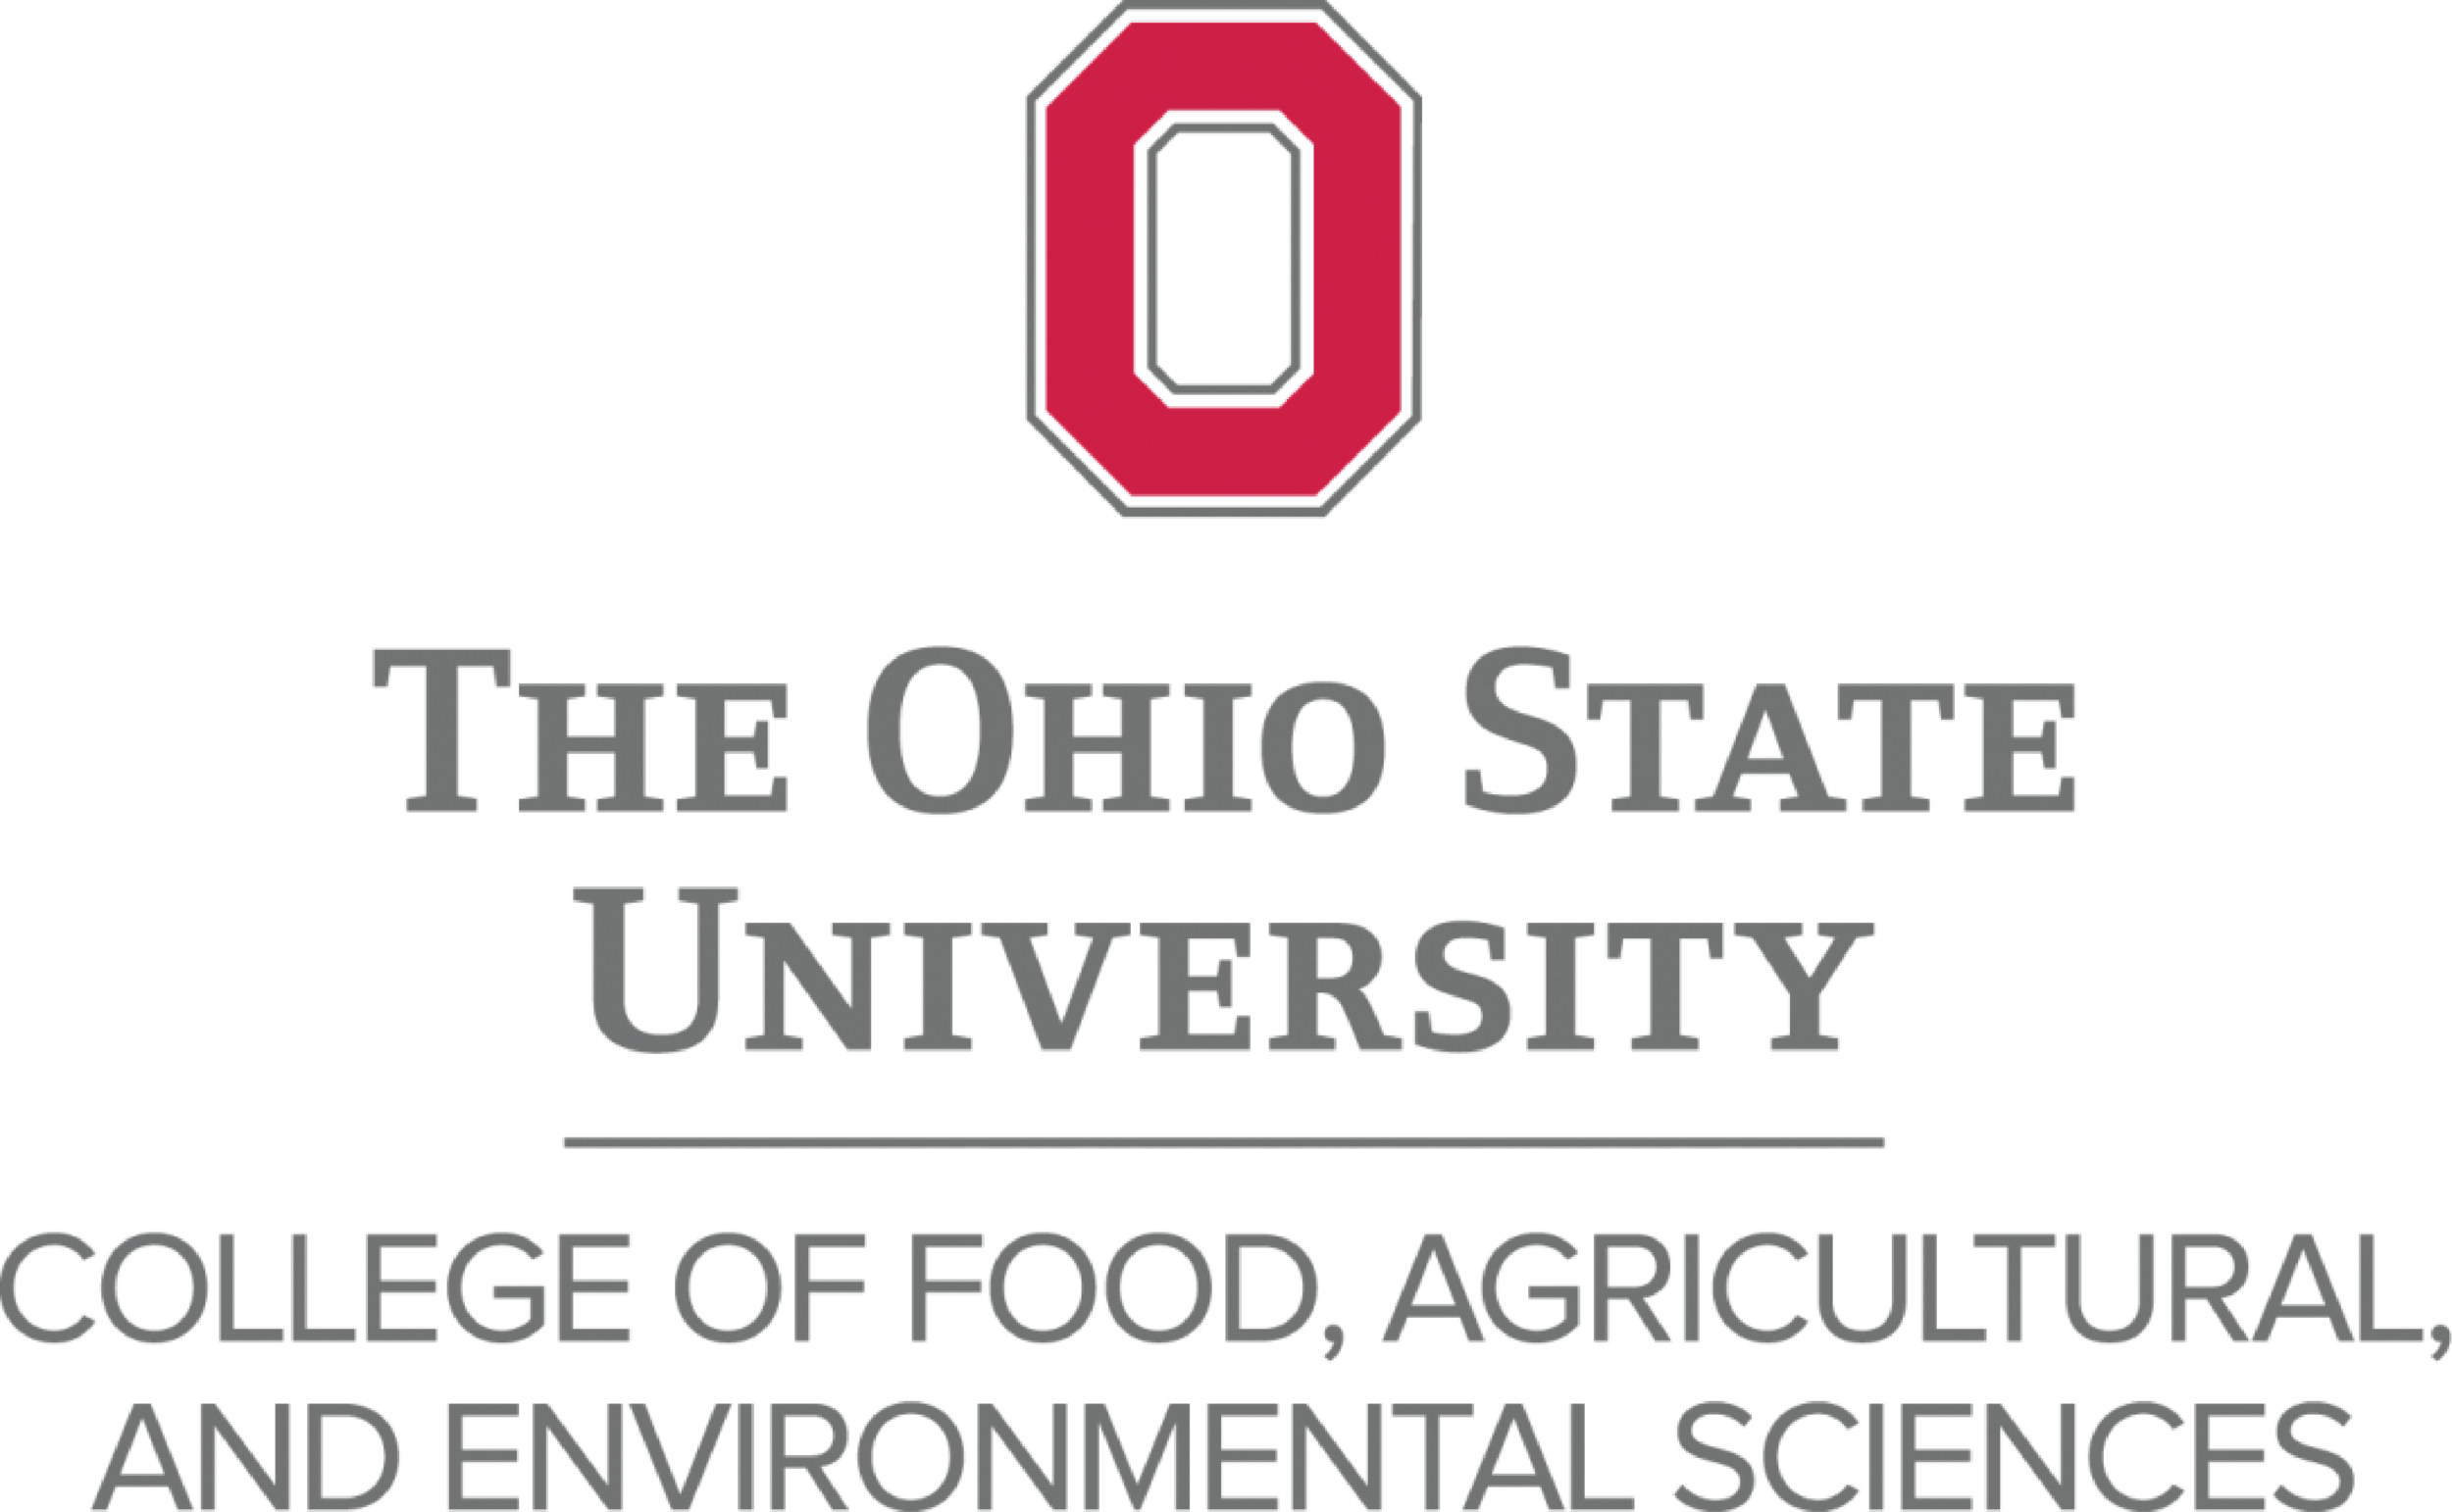 osu_agriculture.png